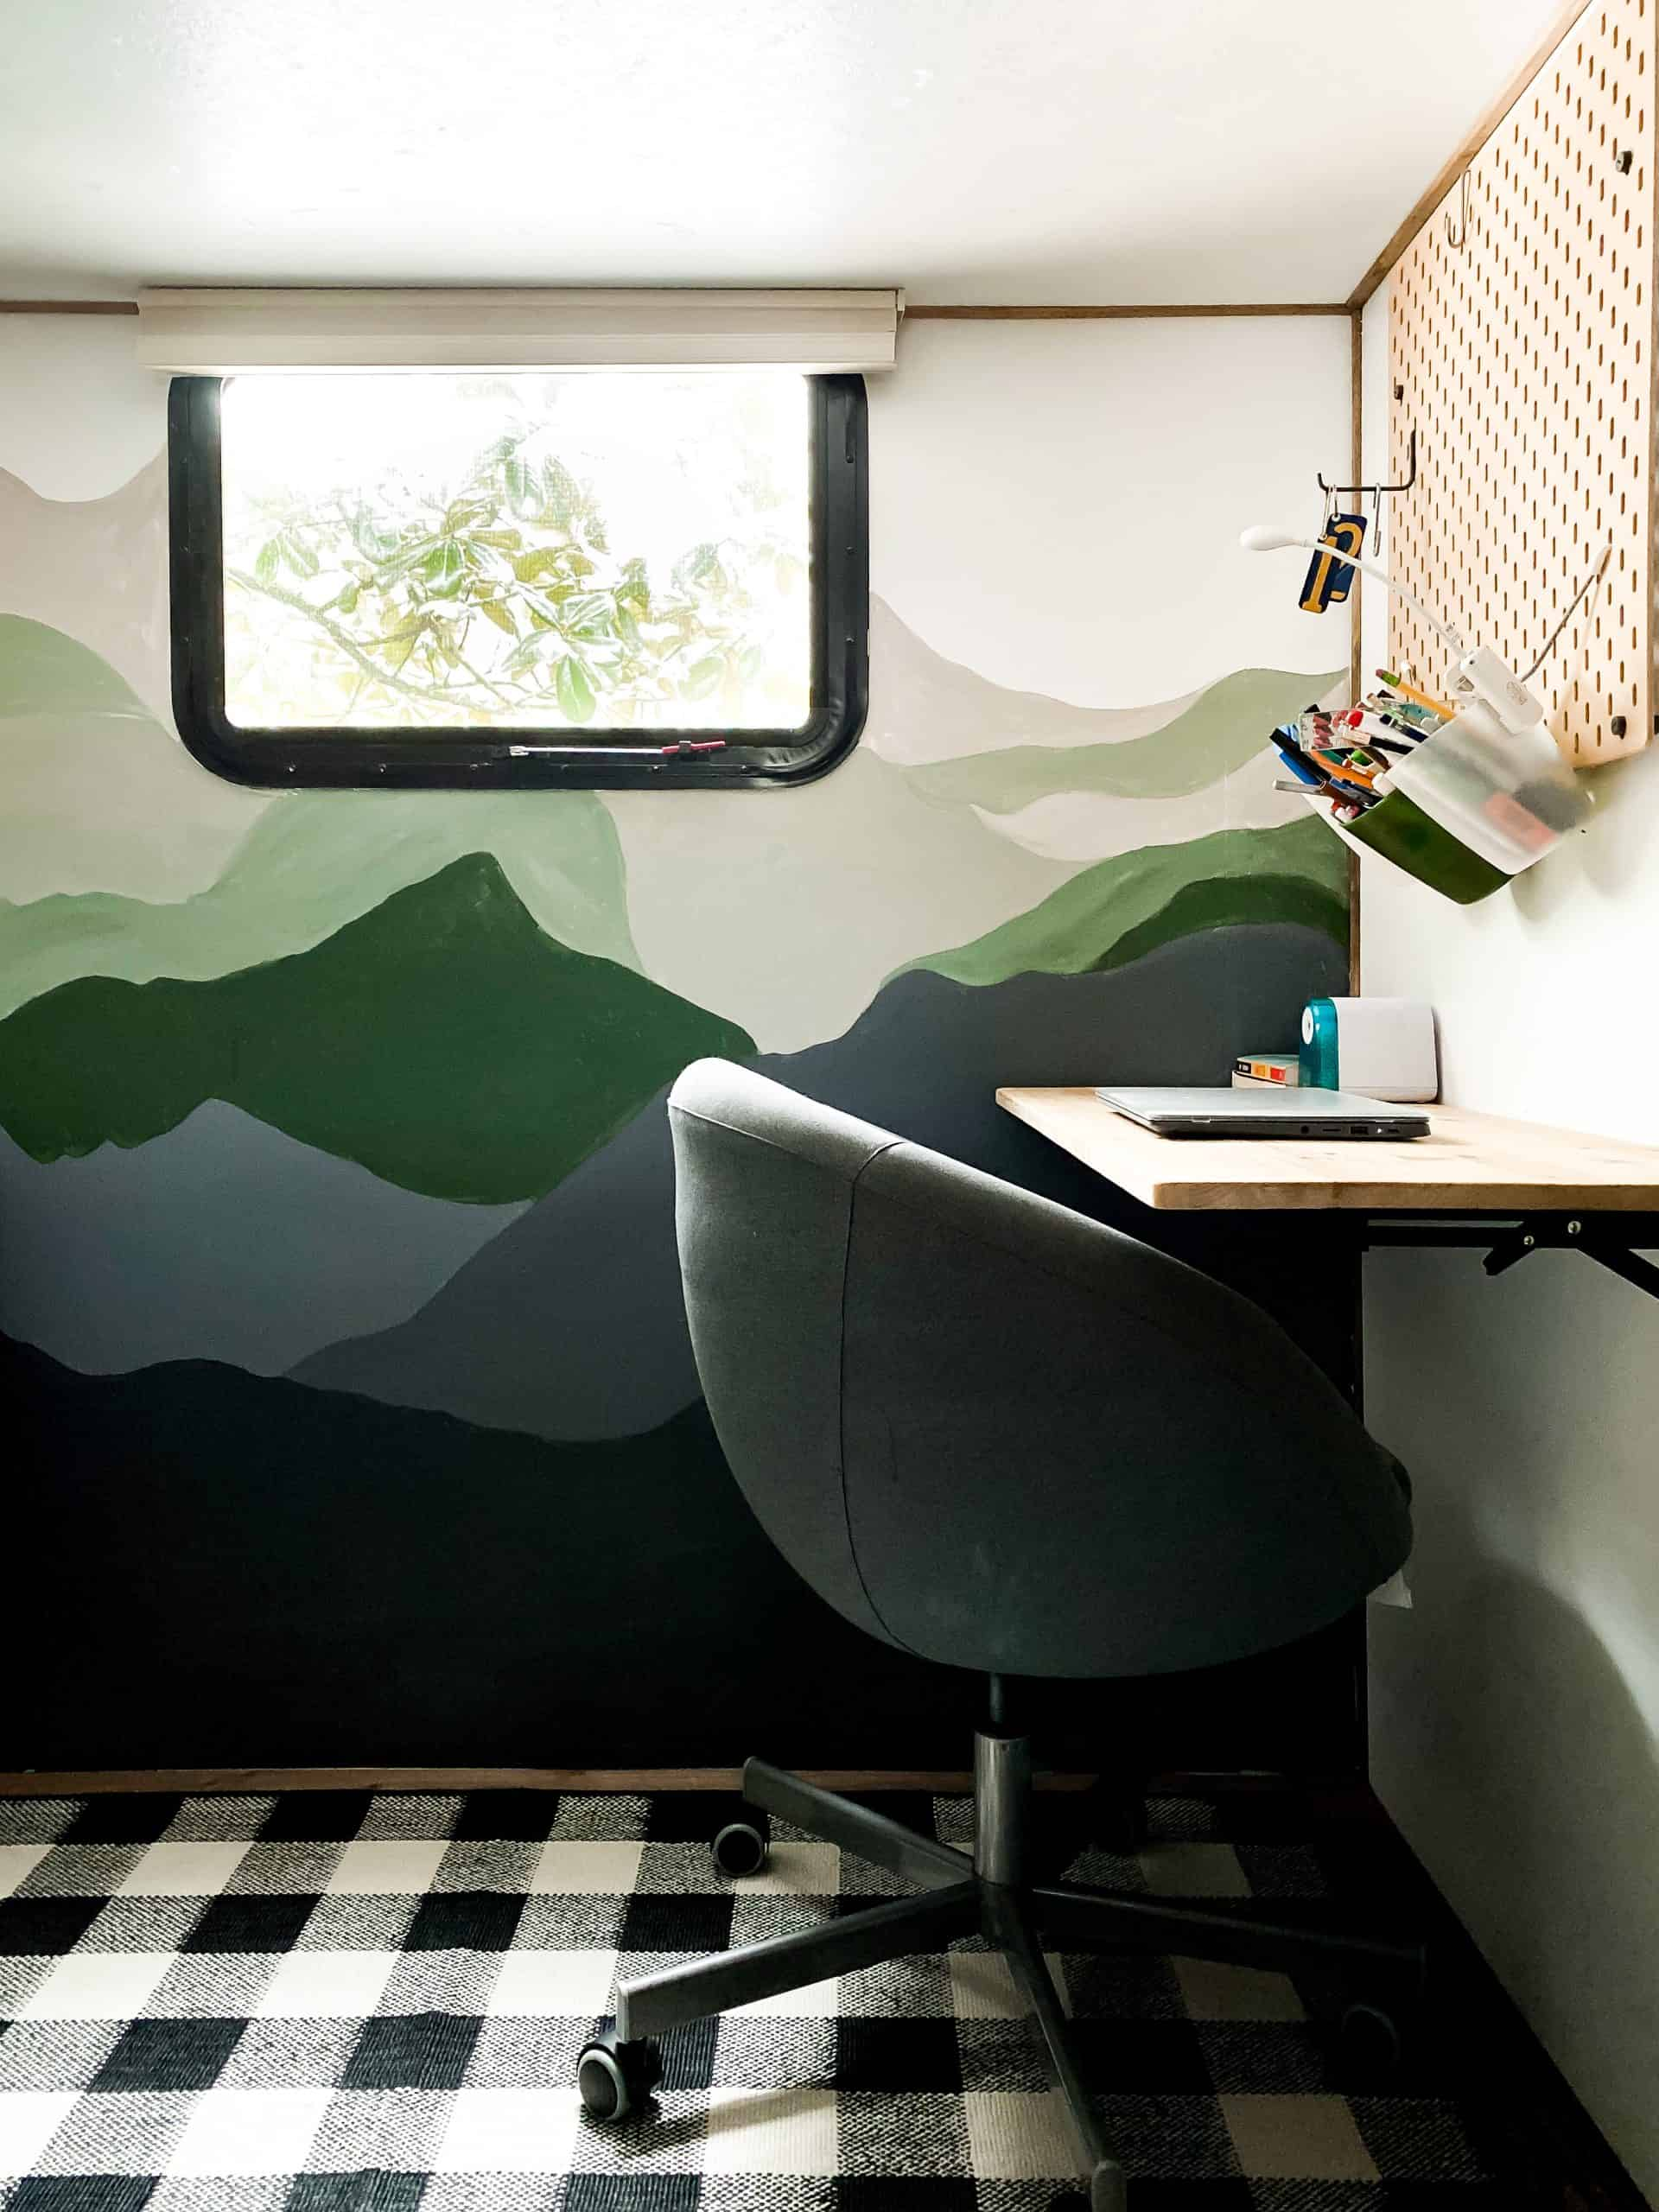 HOW TO PAINT A MOUNTAIN MURAL